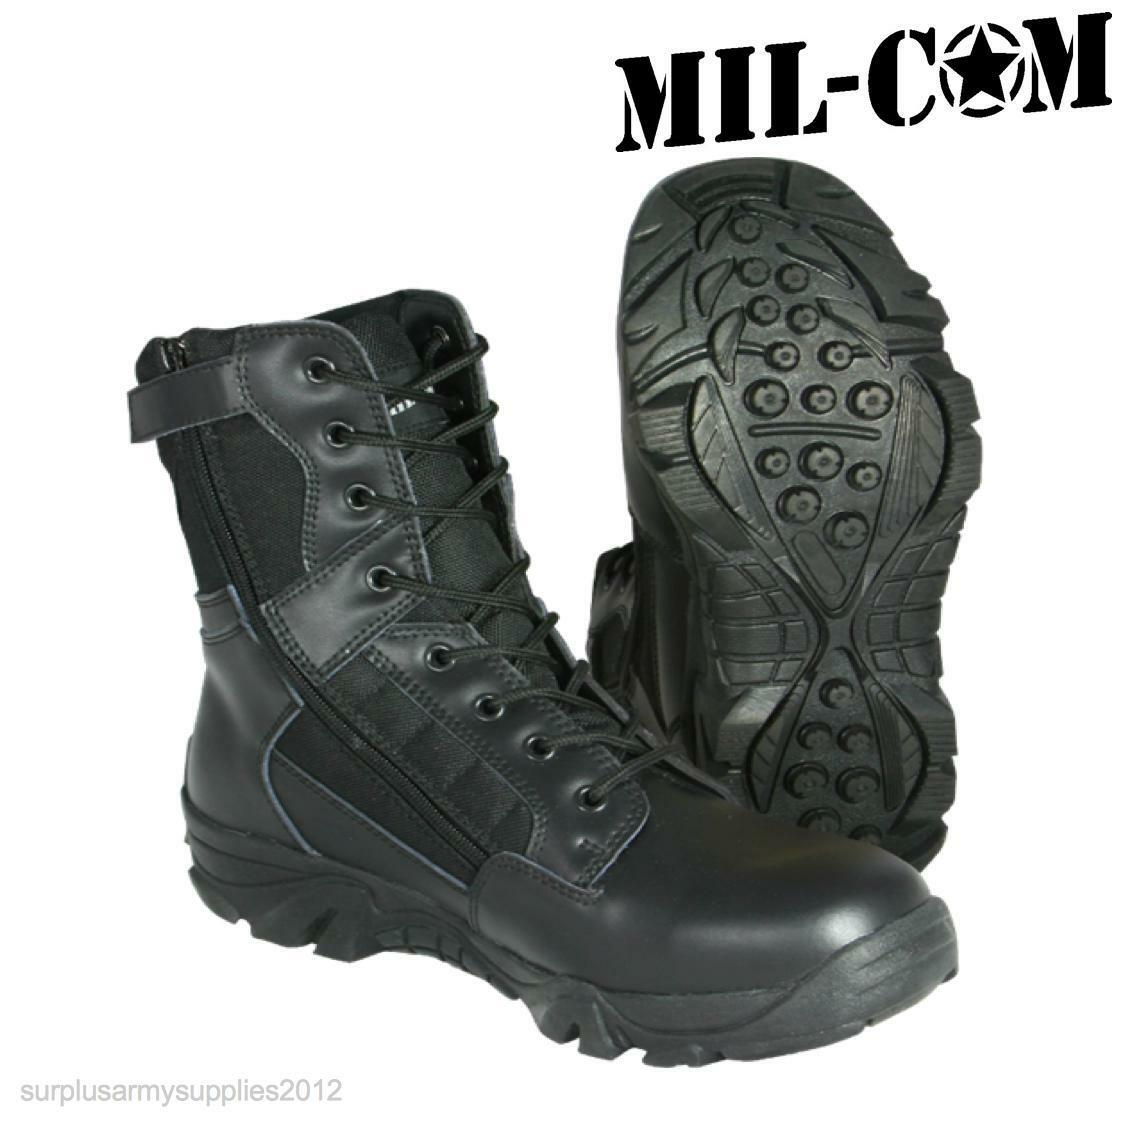 CLEARANCE PATROL  MIL-COM RECON BLACK LEATHER Stiefel ARMY SECURITY PATROL CLEARANCE  Herren UK 13 fca938